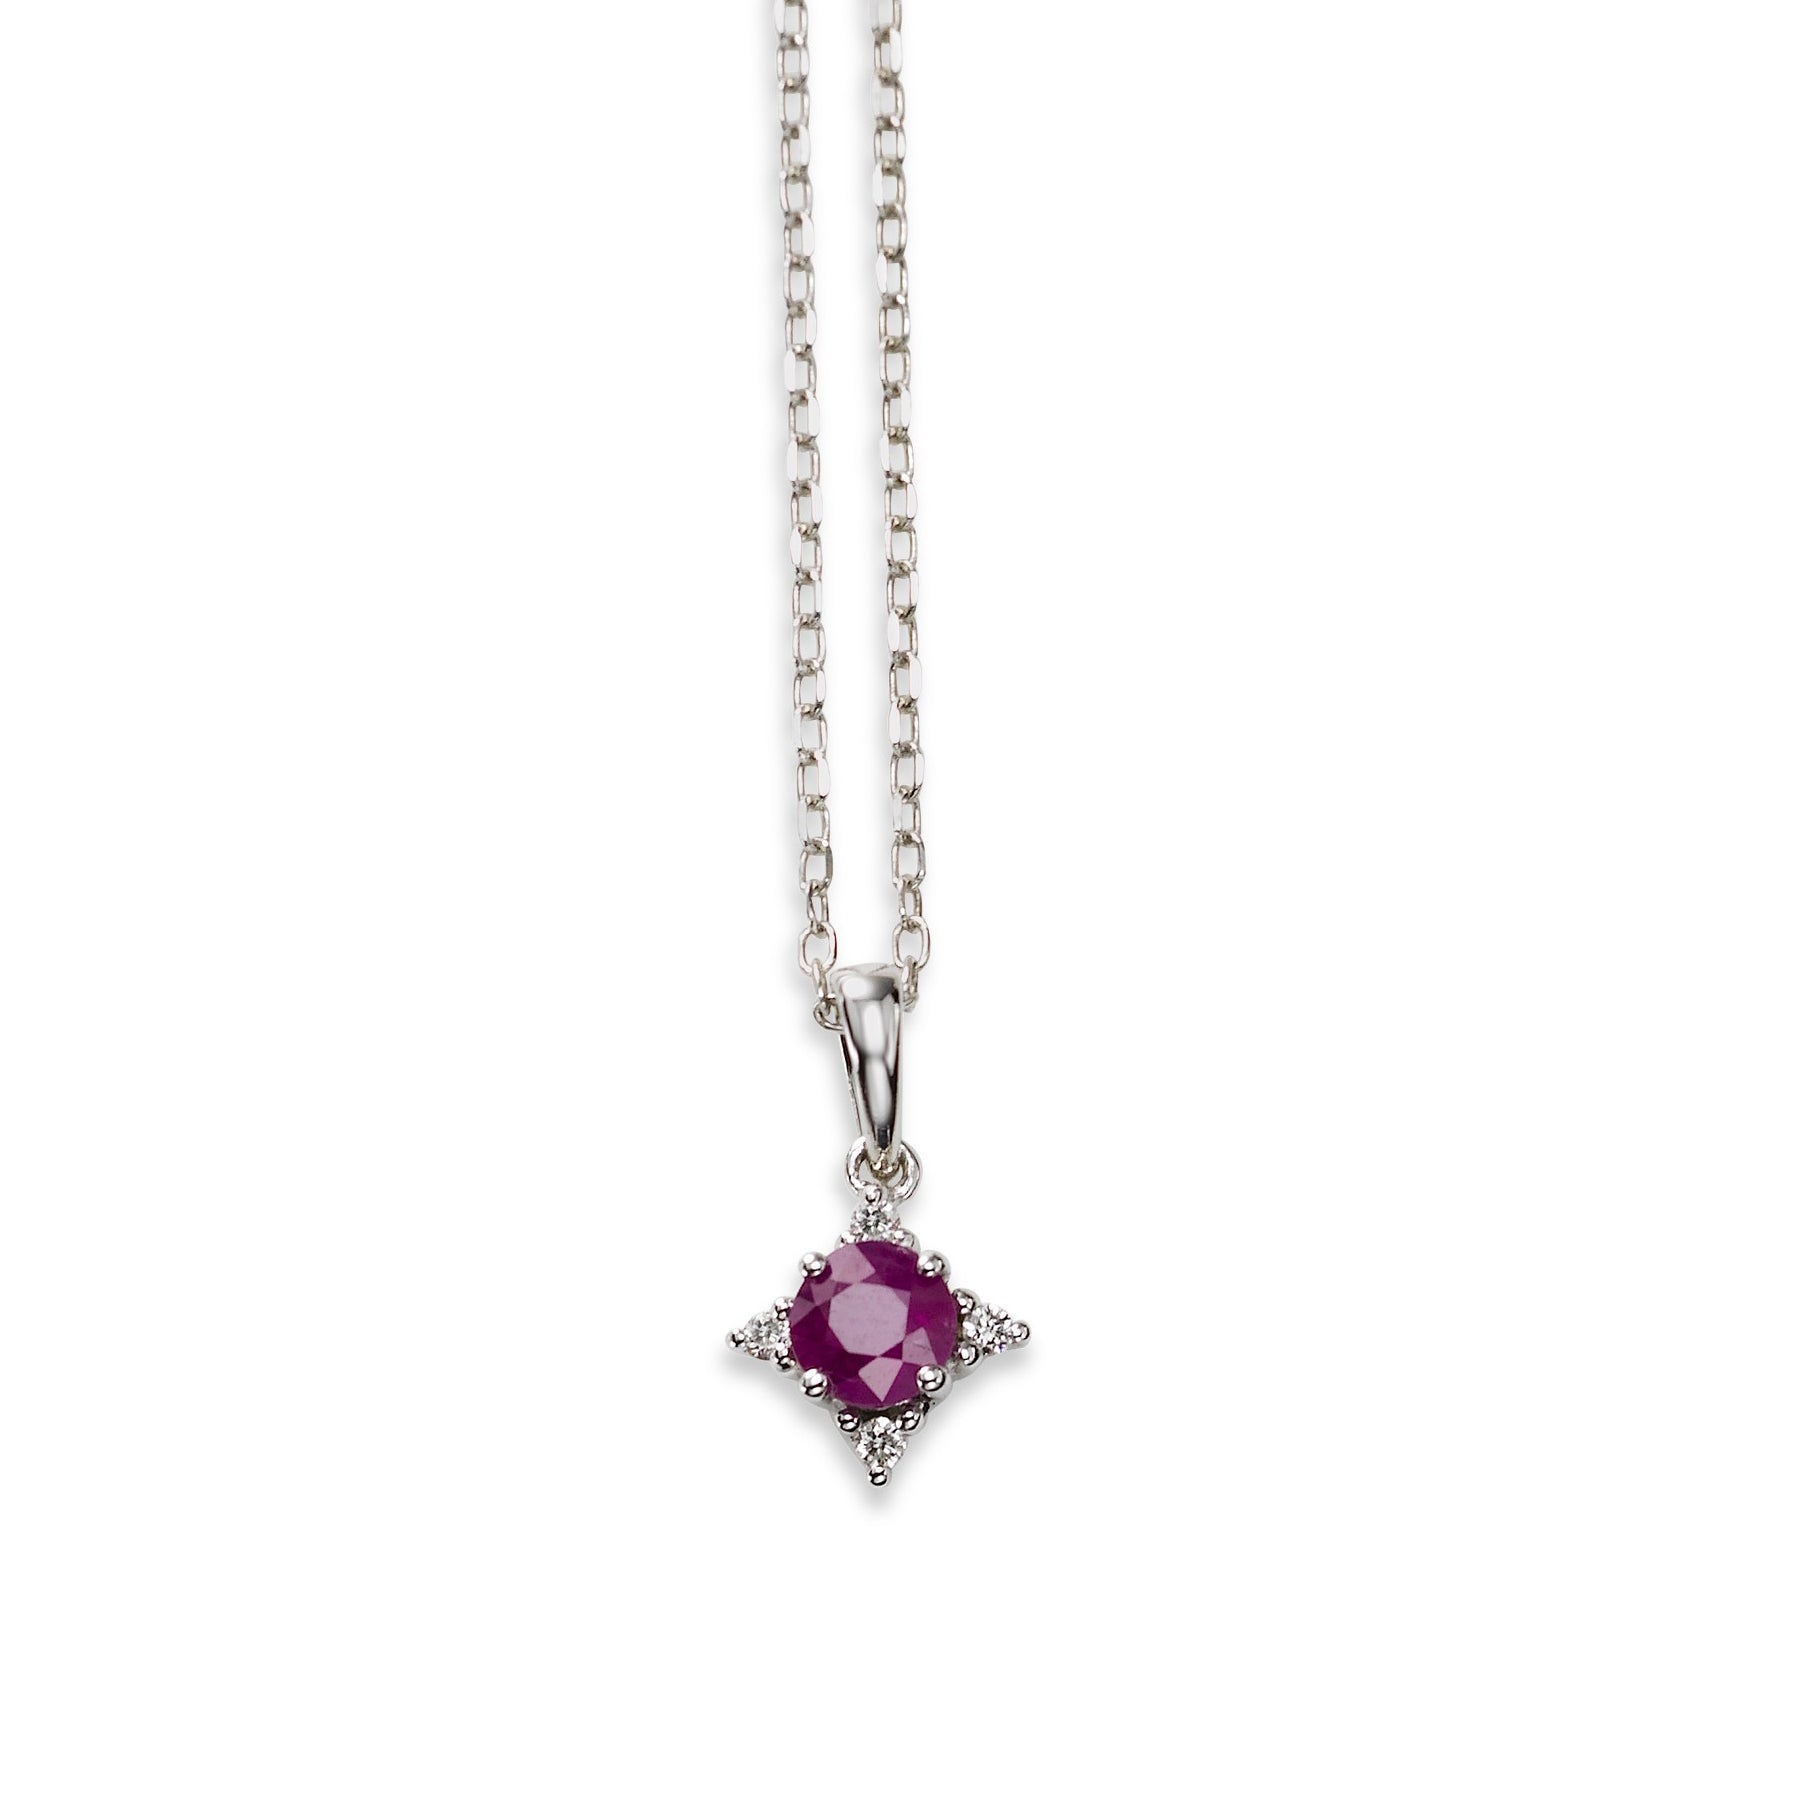 cee15b2e4 Fortunoff Fine Jewelry. Home; Small Ruby Pendant with Diamond Accent ...